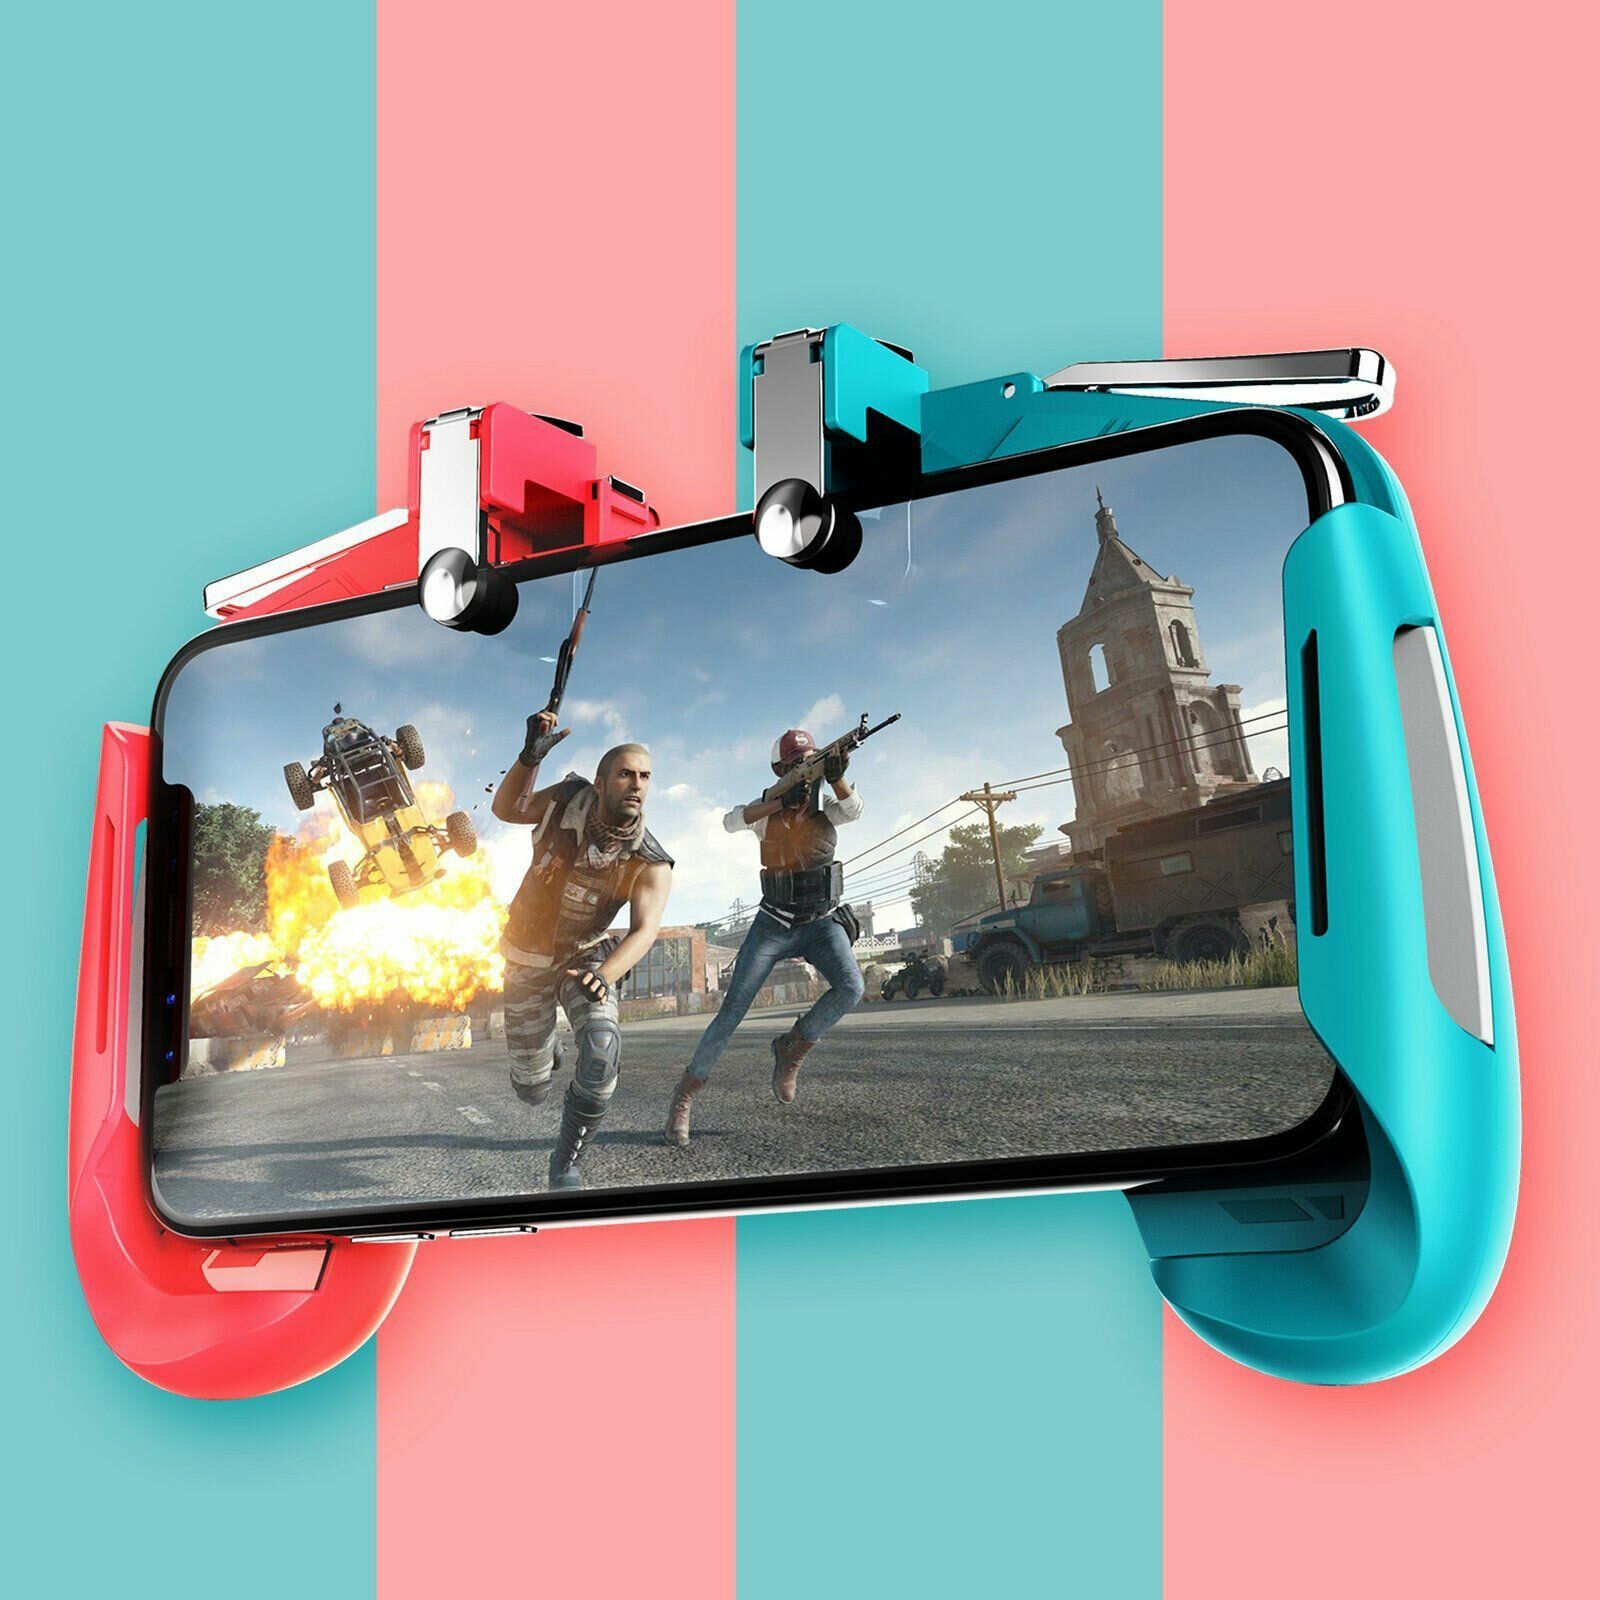 Mobile Gamepad Game Controller Trigger Aim Button L1R1 Shooter Joystick for PUBG Red and blue